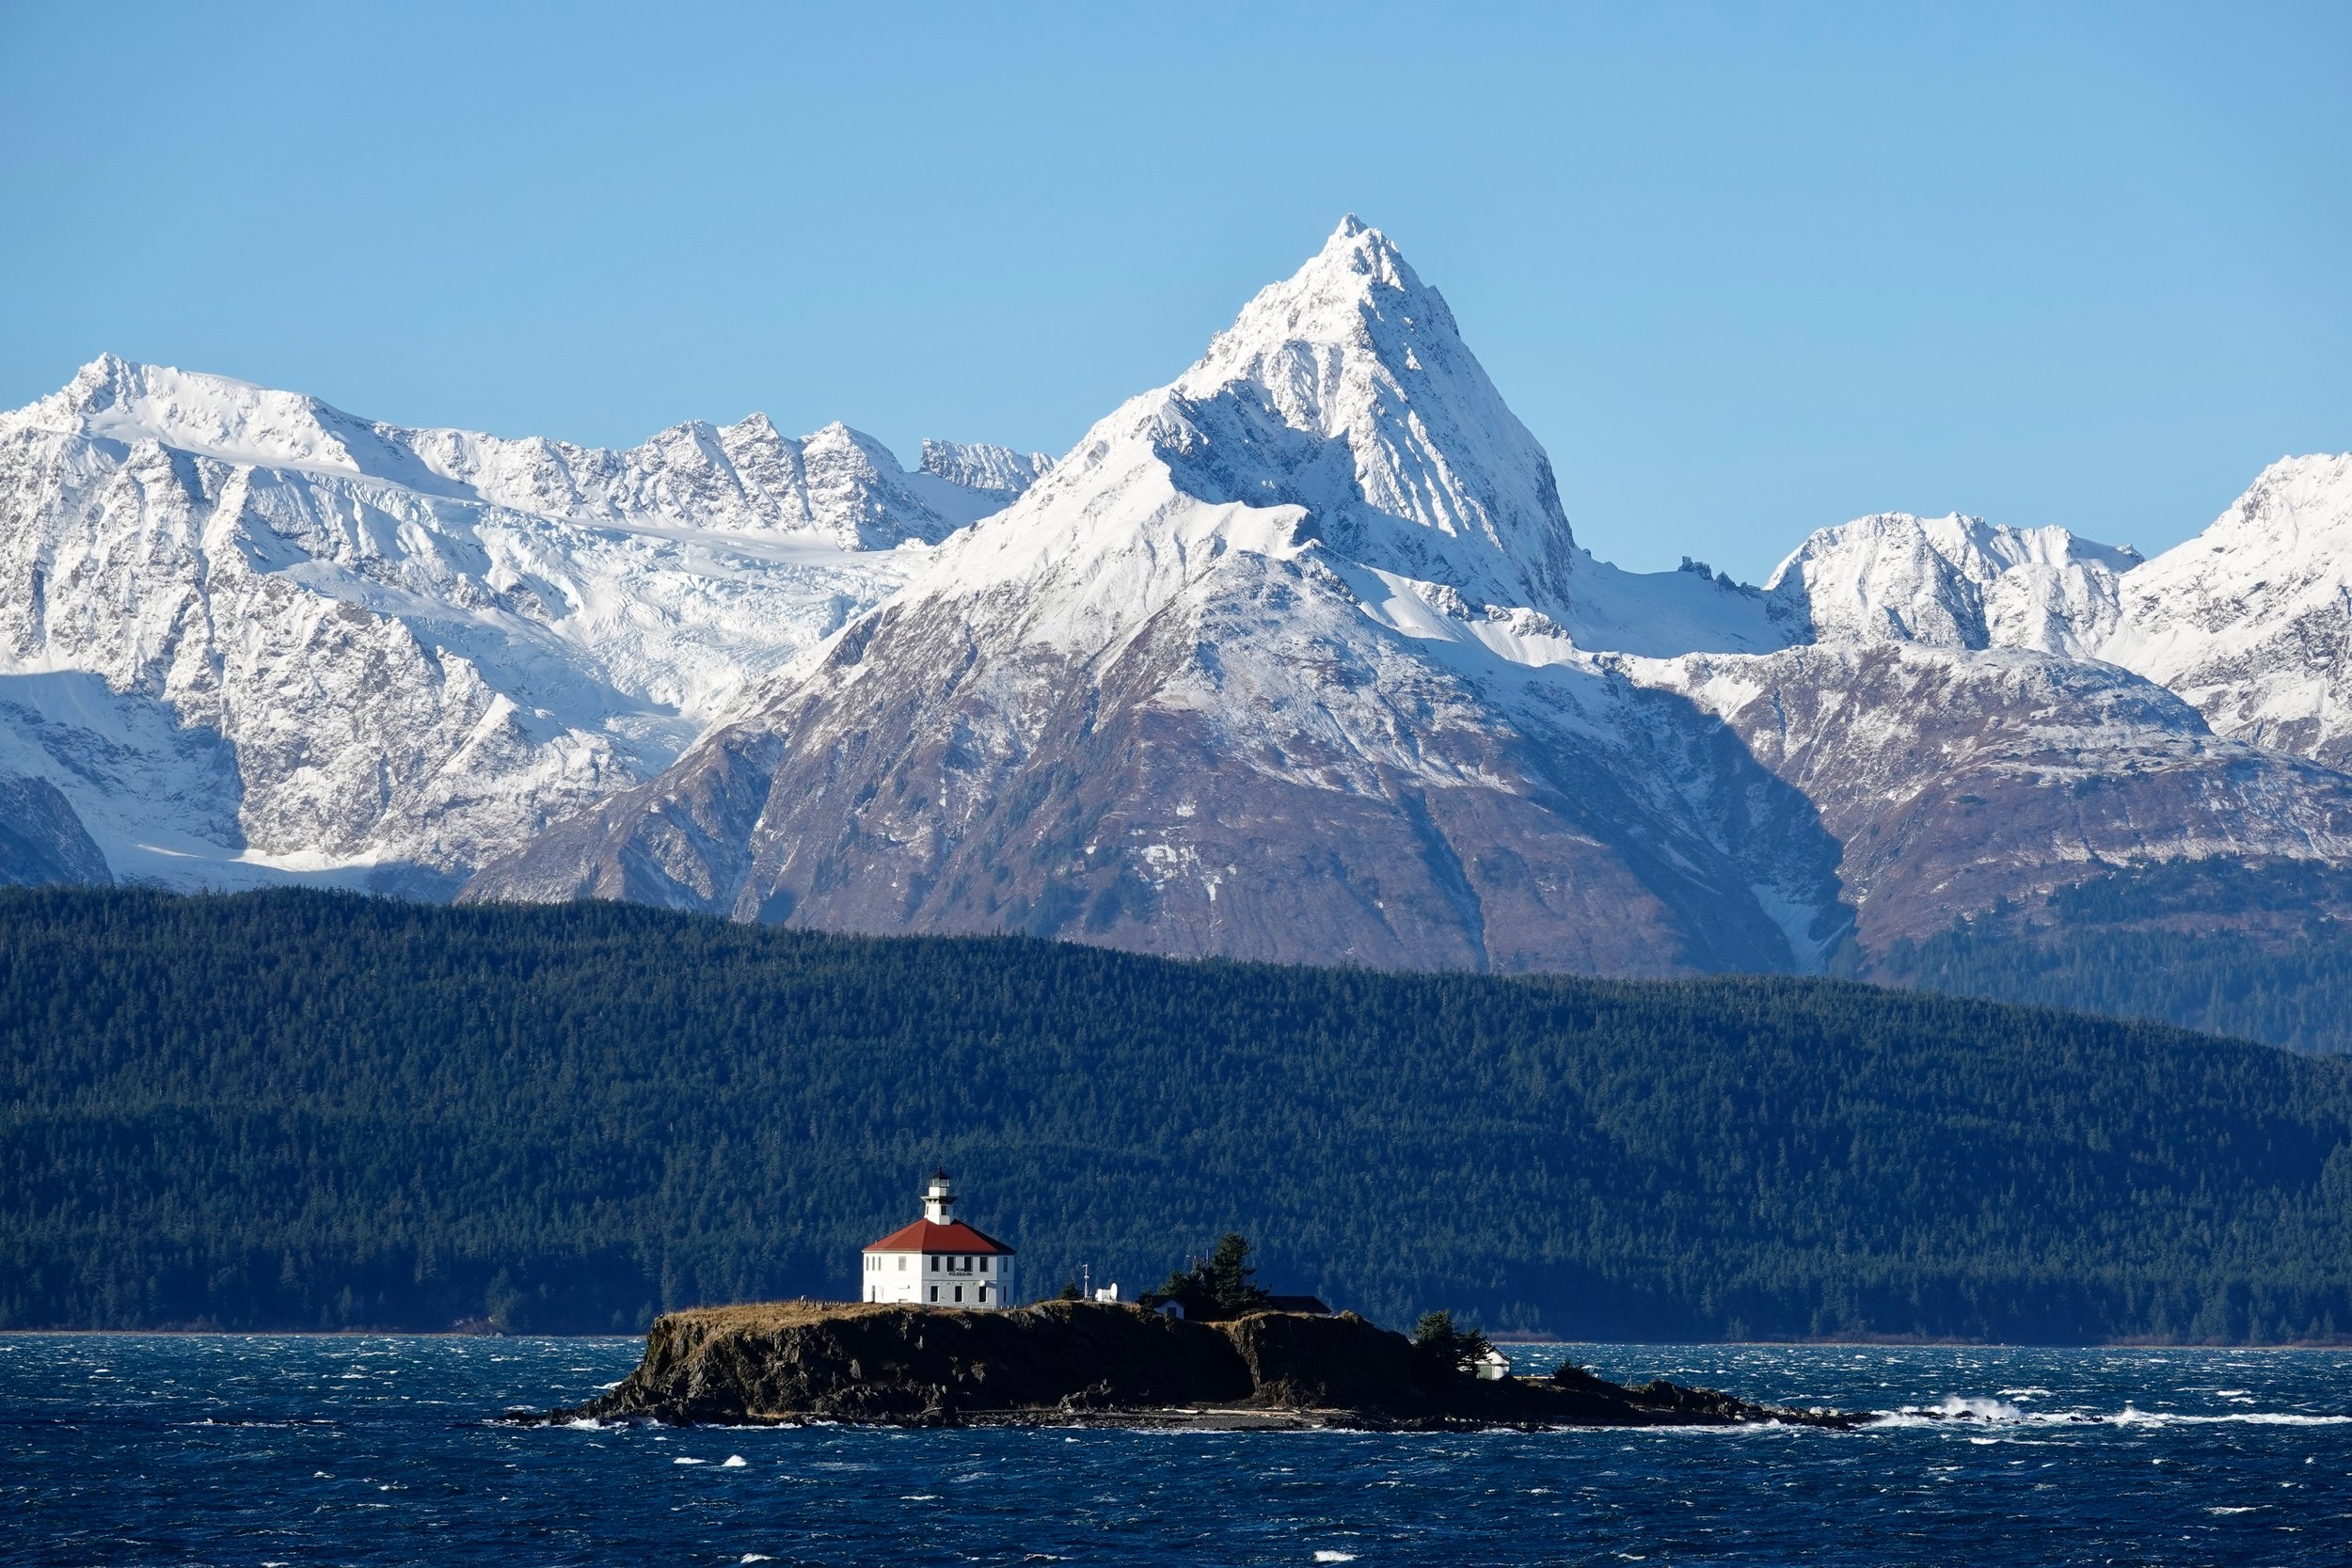 Eldred Rock Lighthouse in the Haines Borough, Alaska.